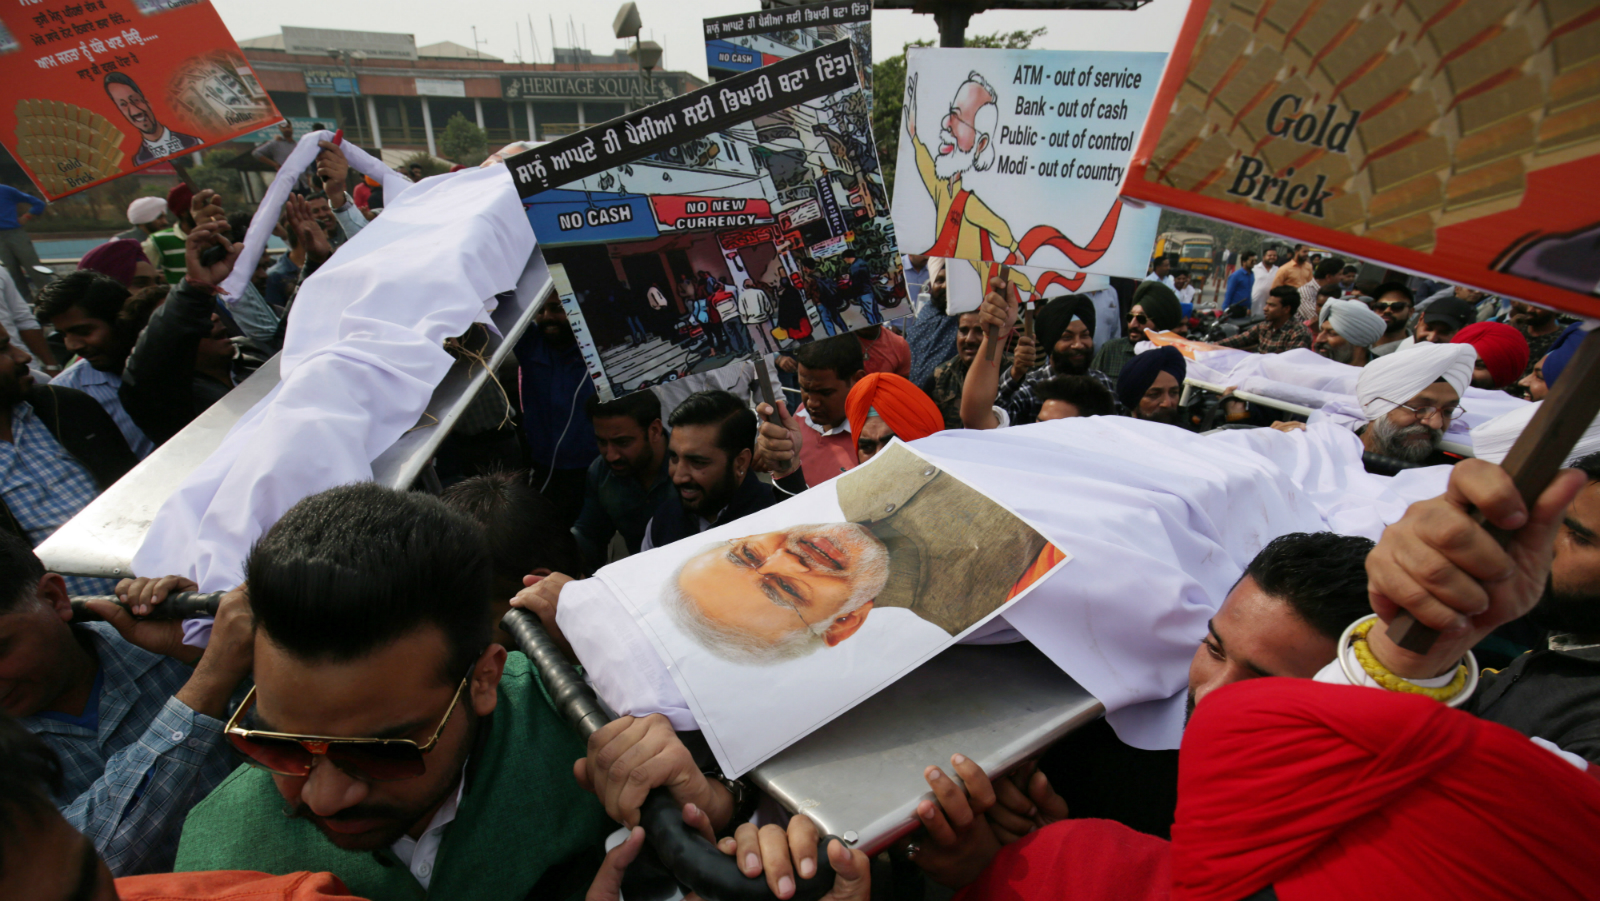 Congress party workers carry effigies representing Indian Finance Minister, Arun Jaitley, Indian Prime Minister Narendra Modi and Bharatiya Janata Party (BJP) President Amit Shah, on stretchers before buring them as they stage a protest against the government, opposing the ban on old high denomination currency notes in Amritsar, India, 21 November 2016. The protest was held against alleged anti-people policies of old 500 and 1000 currency notes (7.37 and 14.73 US dollar worth, respectively) invalidity, implimented by Indian Prime Minister Narendra Modi led government. Indian Prime Minister Narendra Modi announced the elimination of the 500 and 1,000 rupee bills at midnight on 08 November, for the purpose of fighting against 'black money' (hidden assets) and corruption in the country. The decision sparked protests, while storekeepers complained about dwindling sales because many citizens lack the cash to buy the most basic products, as queues get longer at ATMs and banks.